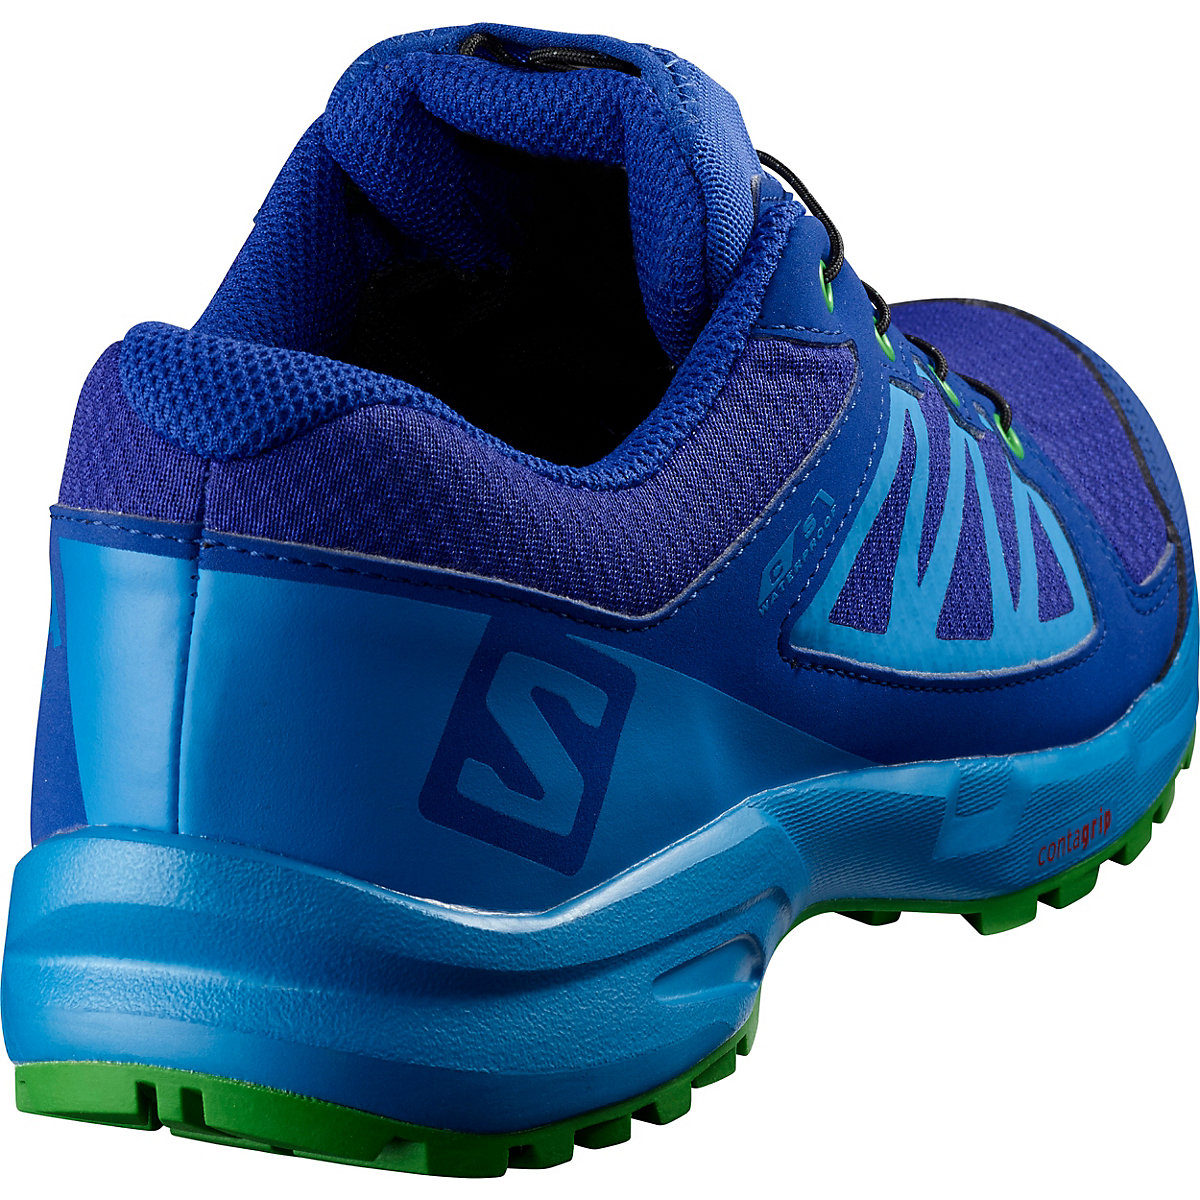 Salomon, Kinder Outdoorschuhe Xa Elevate Cswp J, Blau